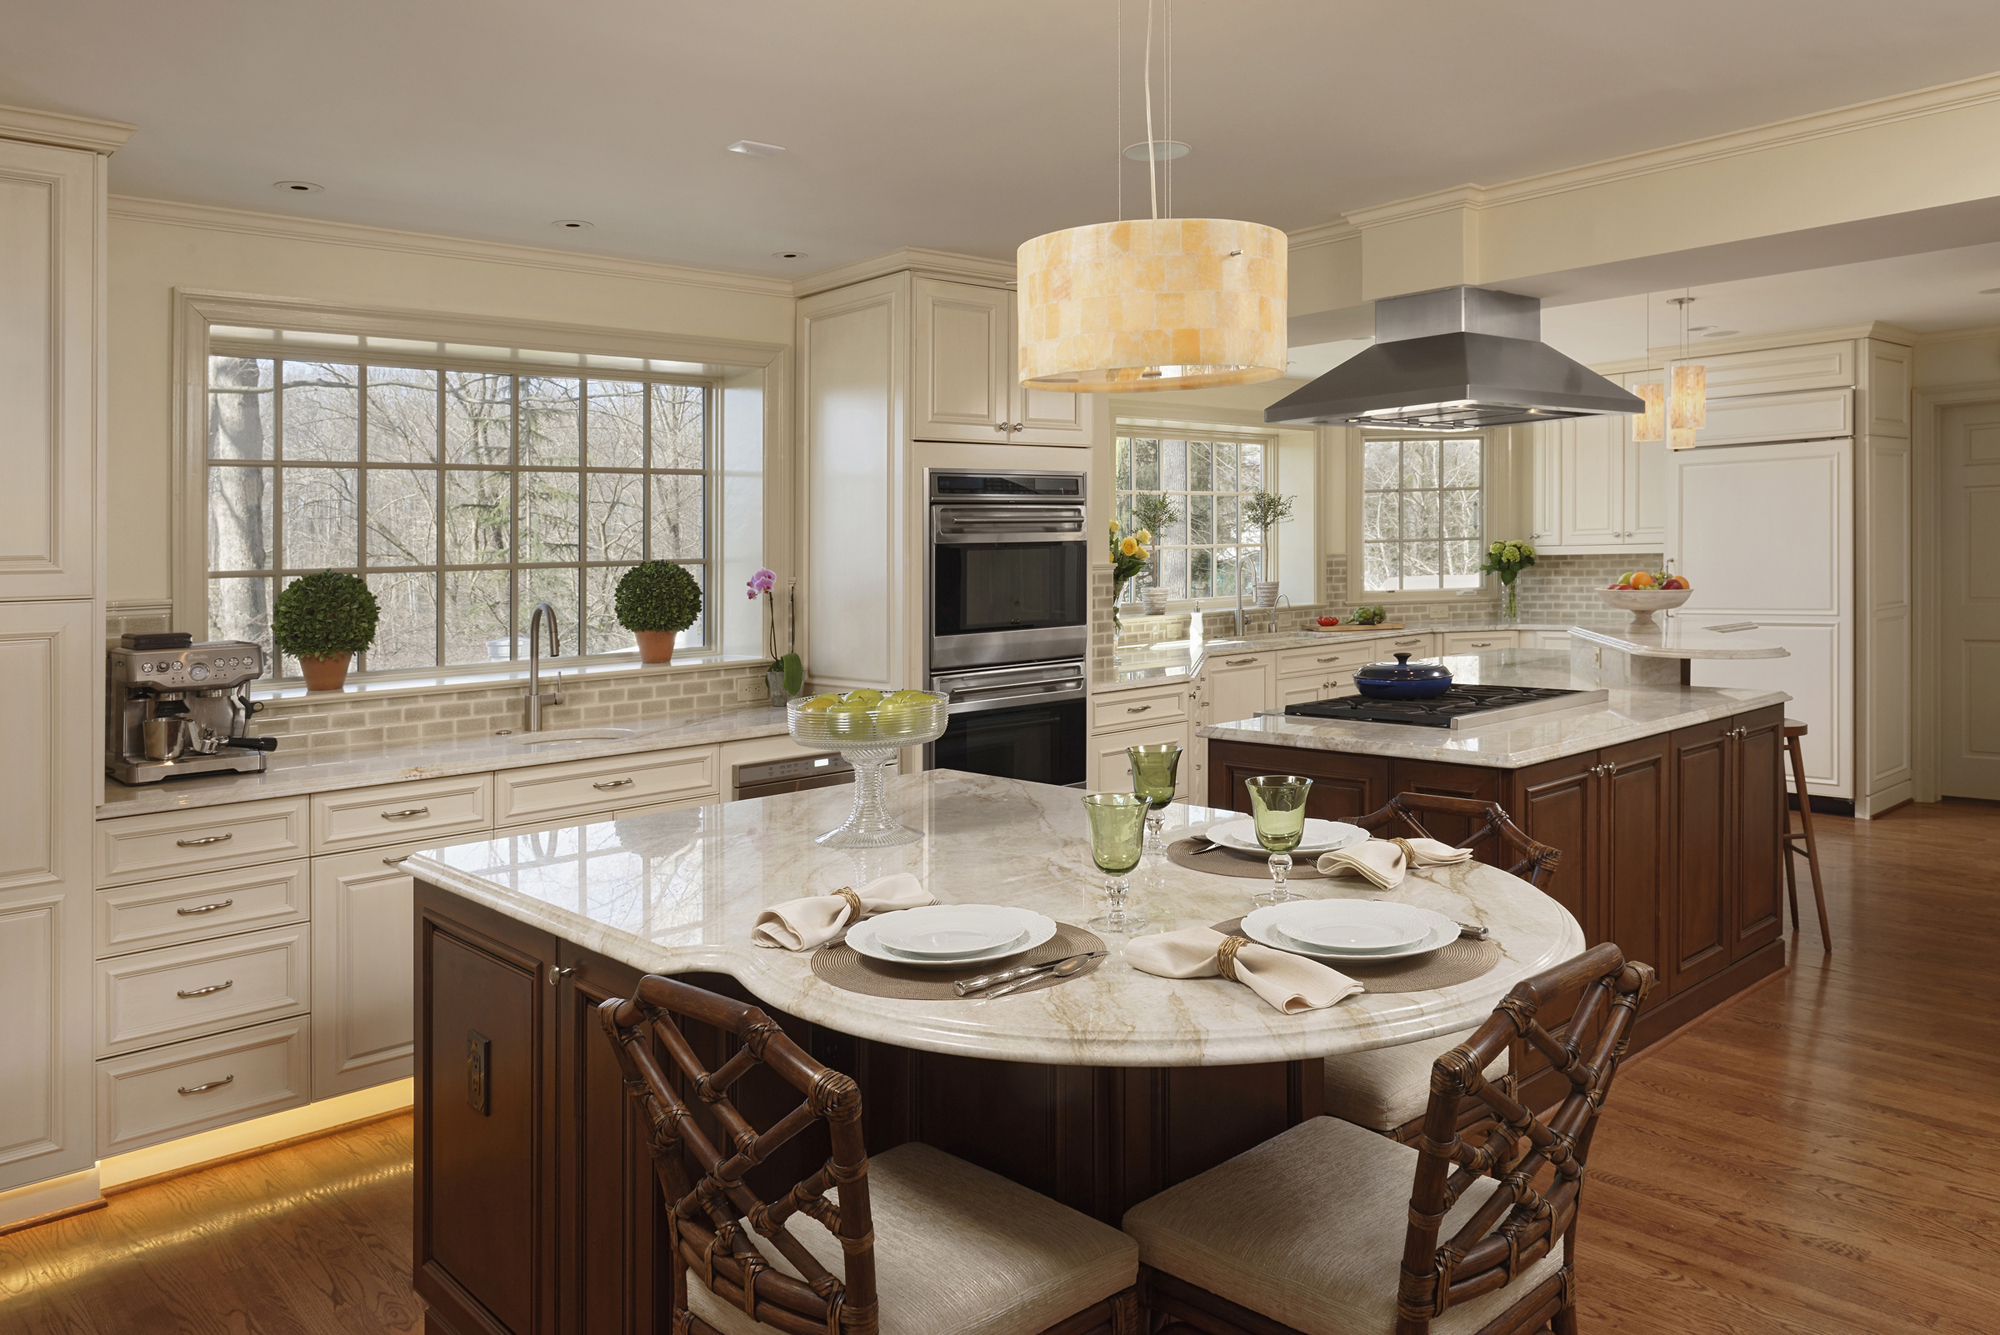 Gorgeous Kitchen Renovation In Potomac Maryland: Kitchens, Breakfast & Dining Rooms Photo Gallery